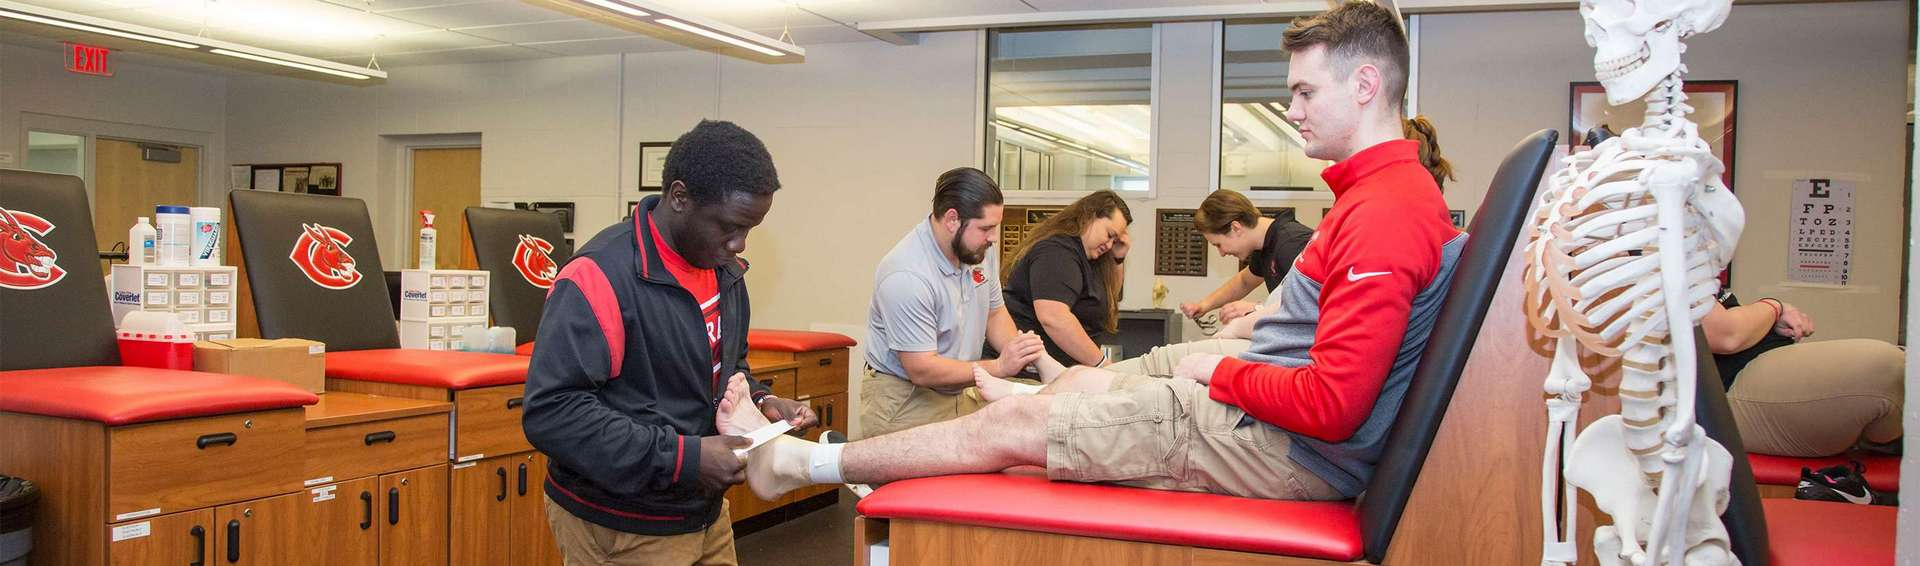 An athletic trainer is rehabilitating an athlete sitting on the training table. There is a skeleton model on the far right.